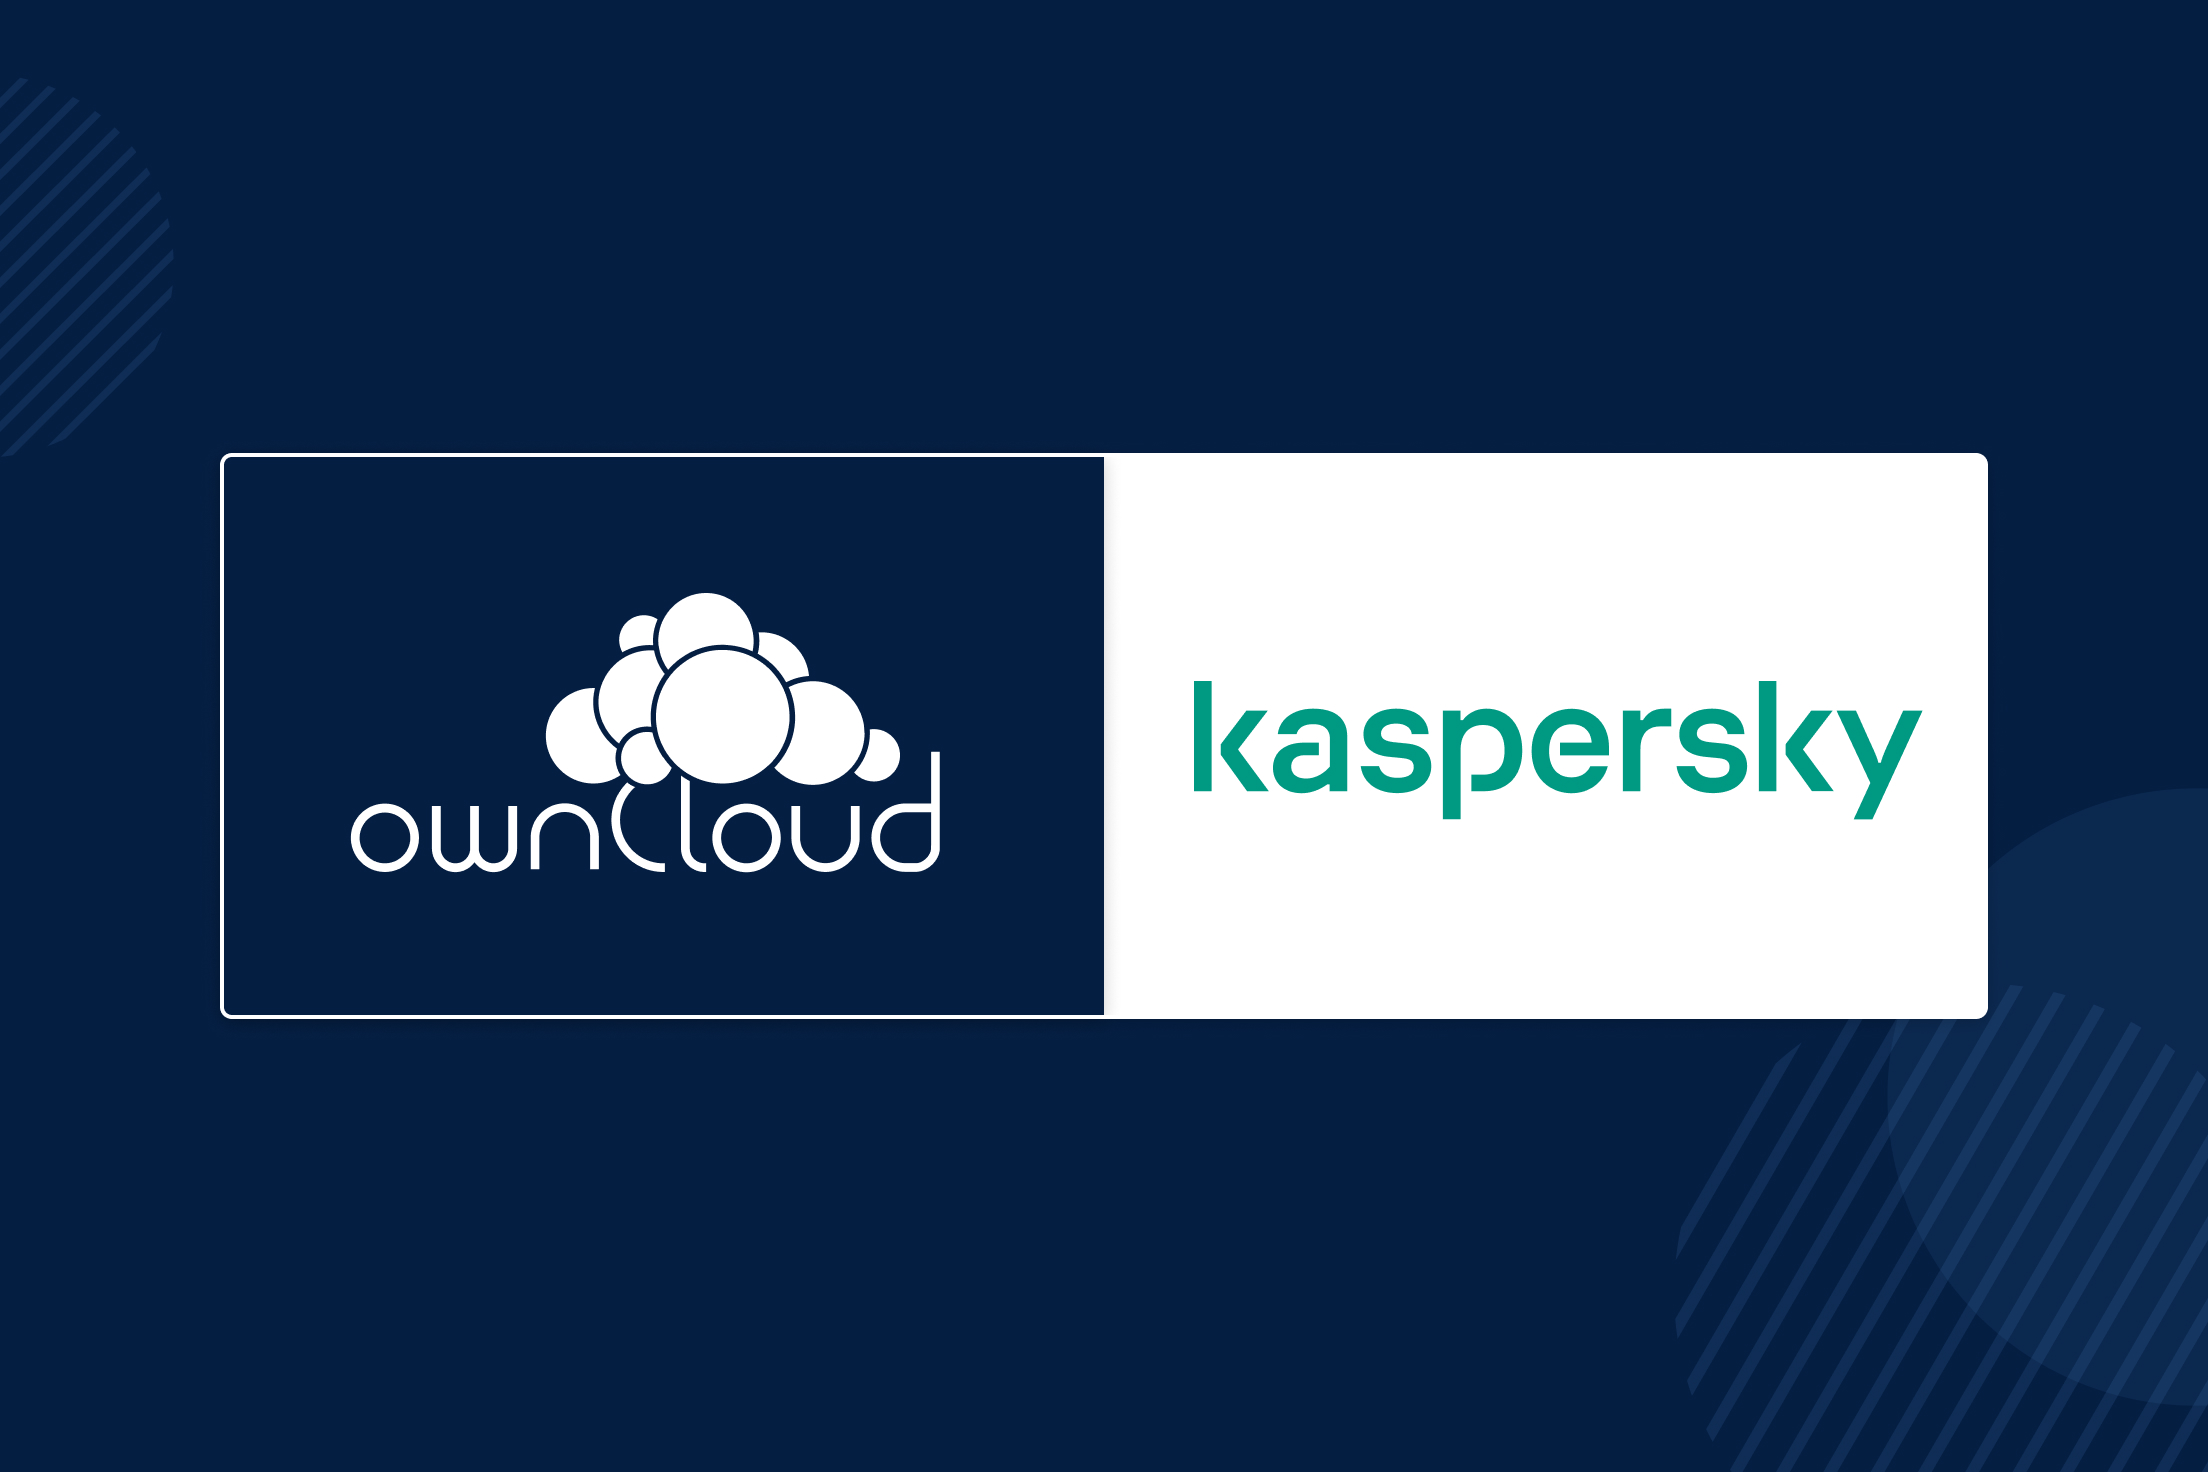 ownCloud and Kaspersky to start Technology partnership